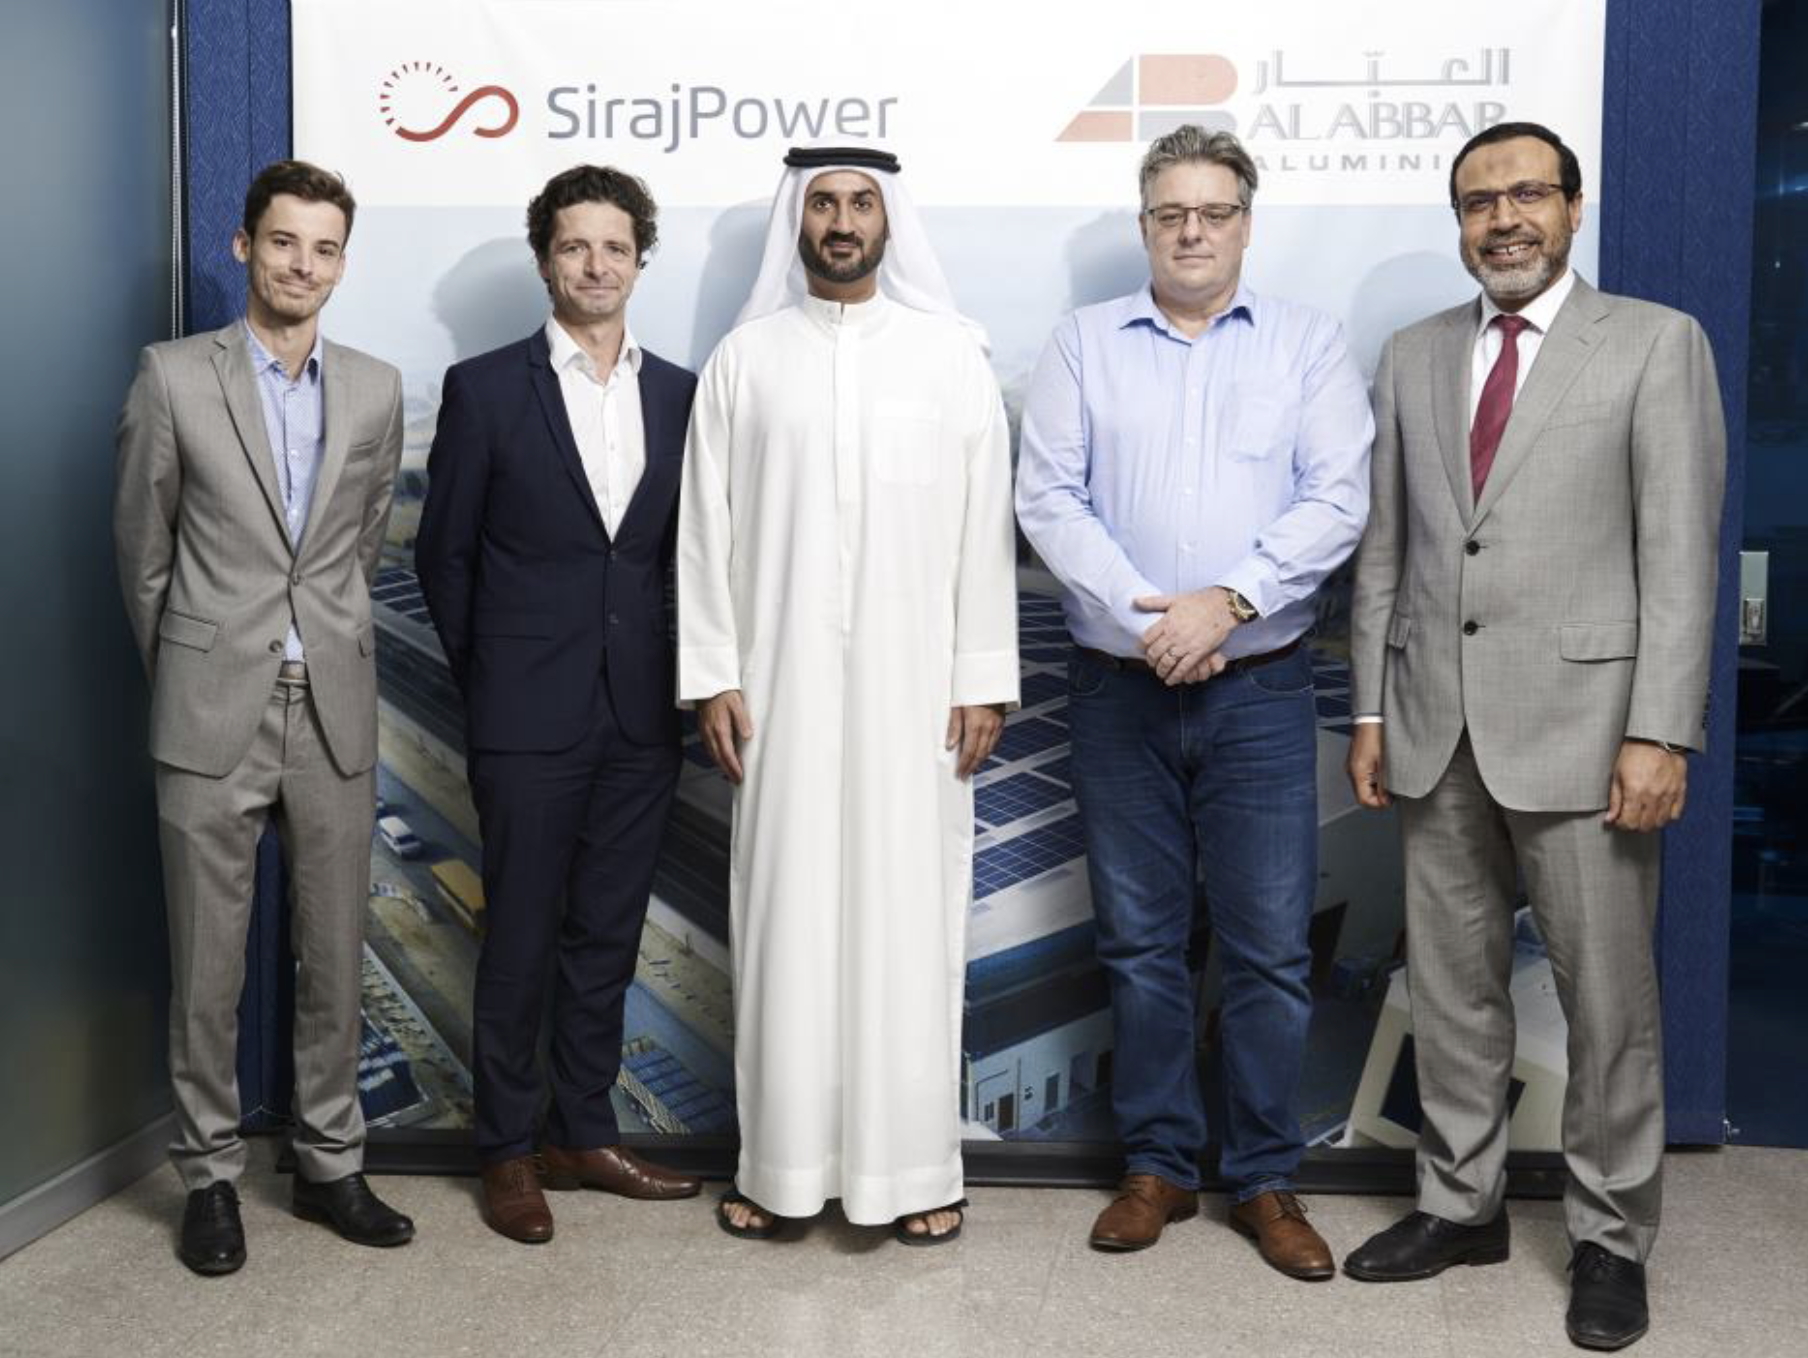 SirajPower Continues its Support of Shams Dubai With New